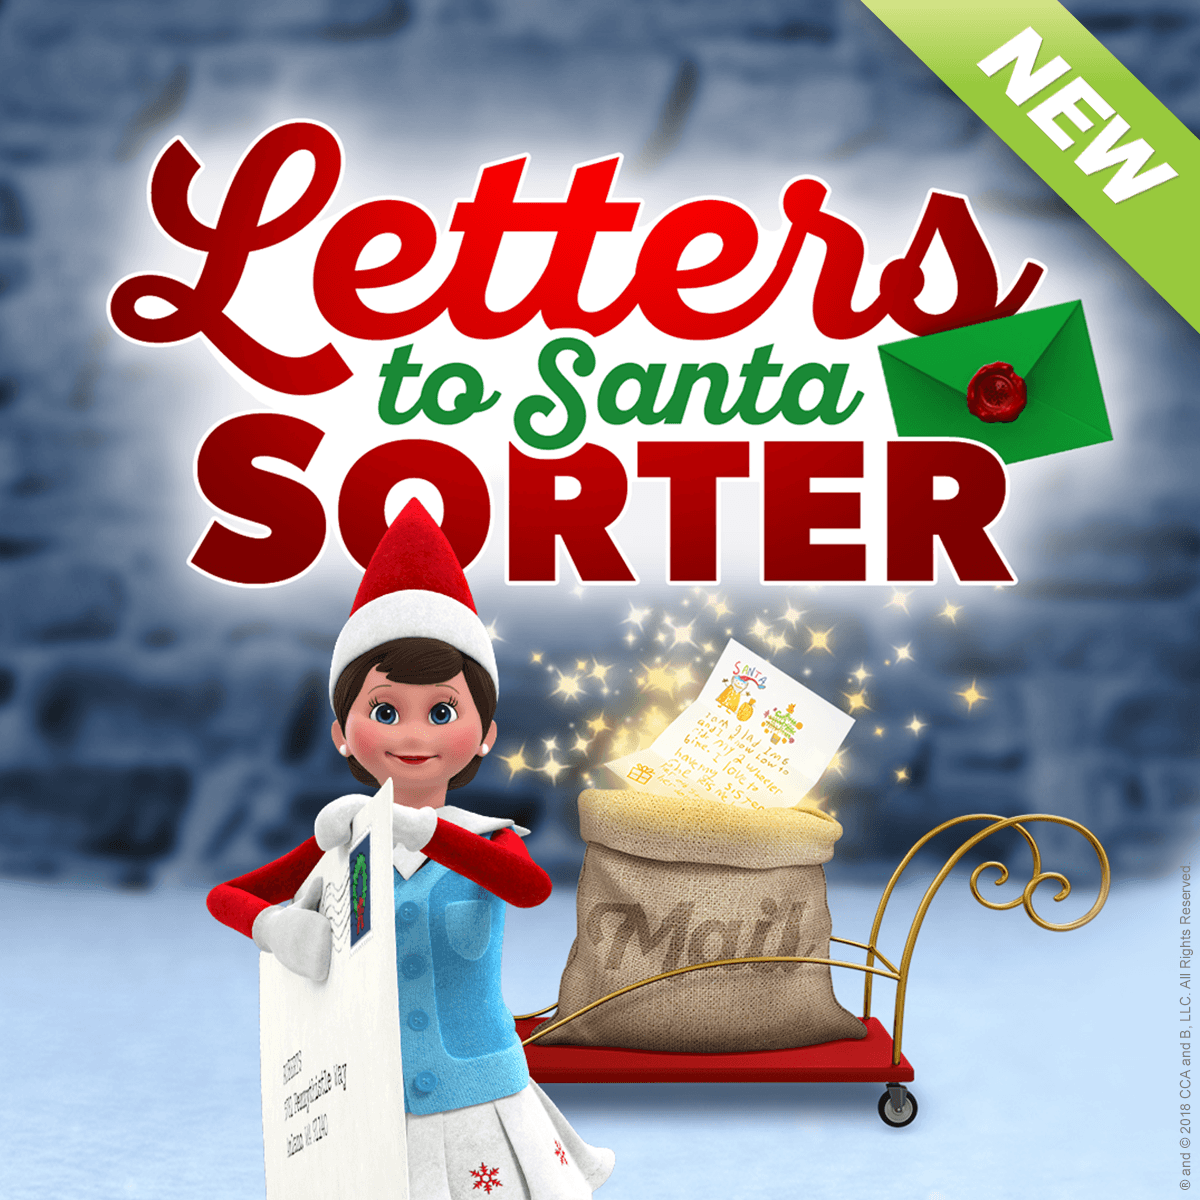 Letters To Santa Sorter Santa letter, Elf on the shelf, Elf